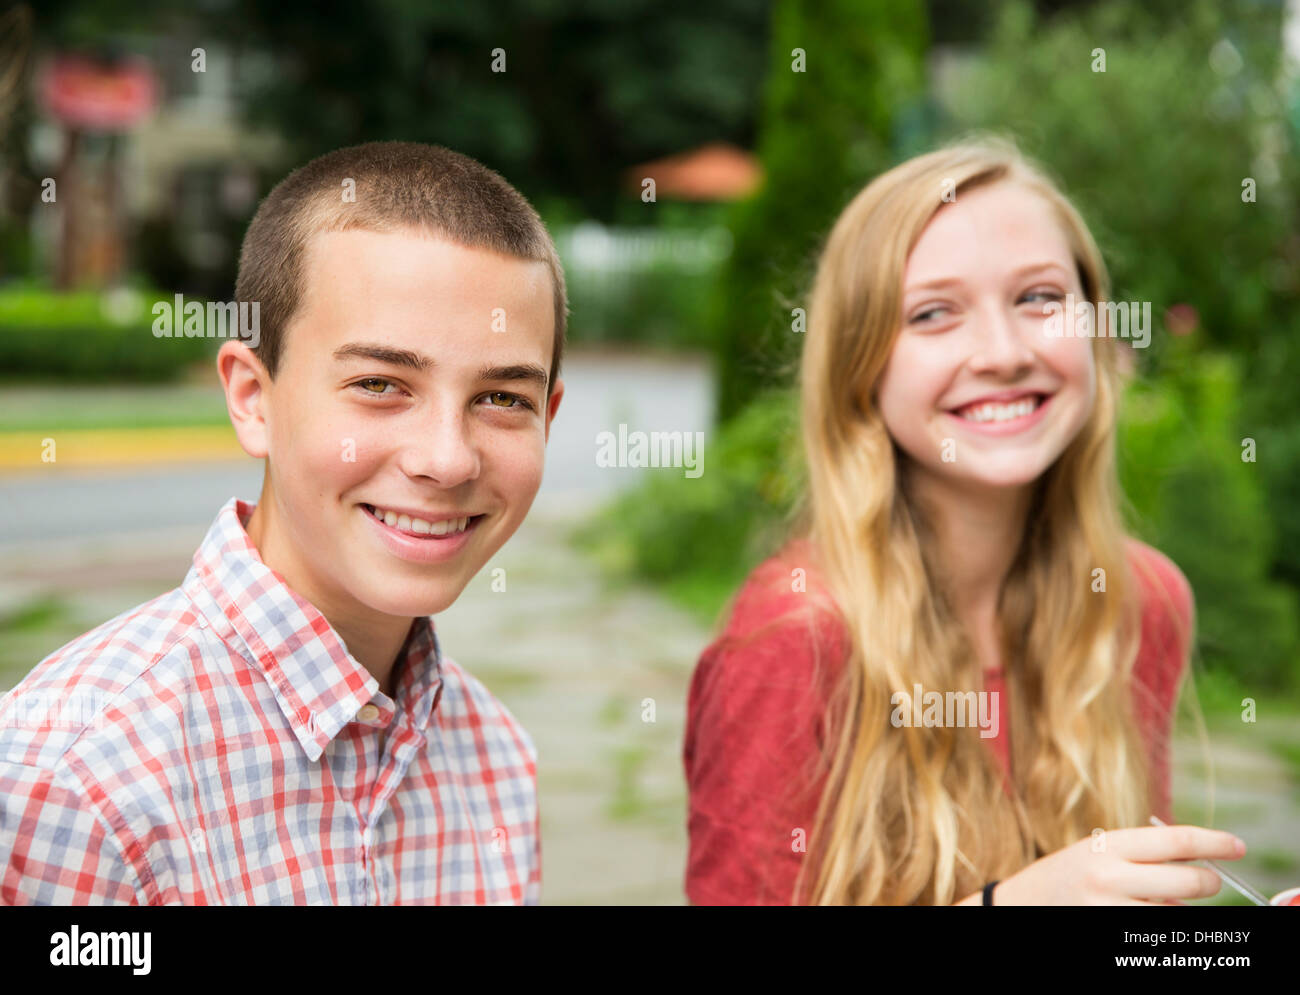 Two young people, boy and girl sitting side by side laughing. - Stock Image